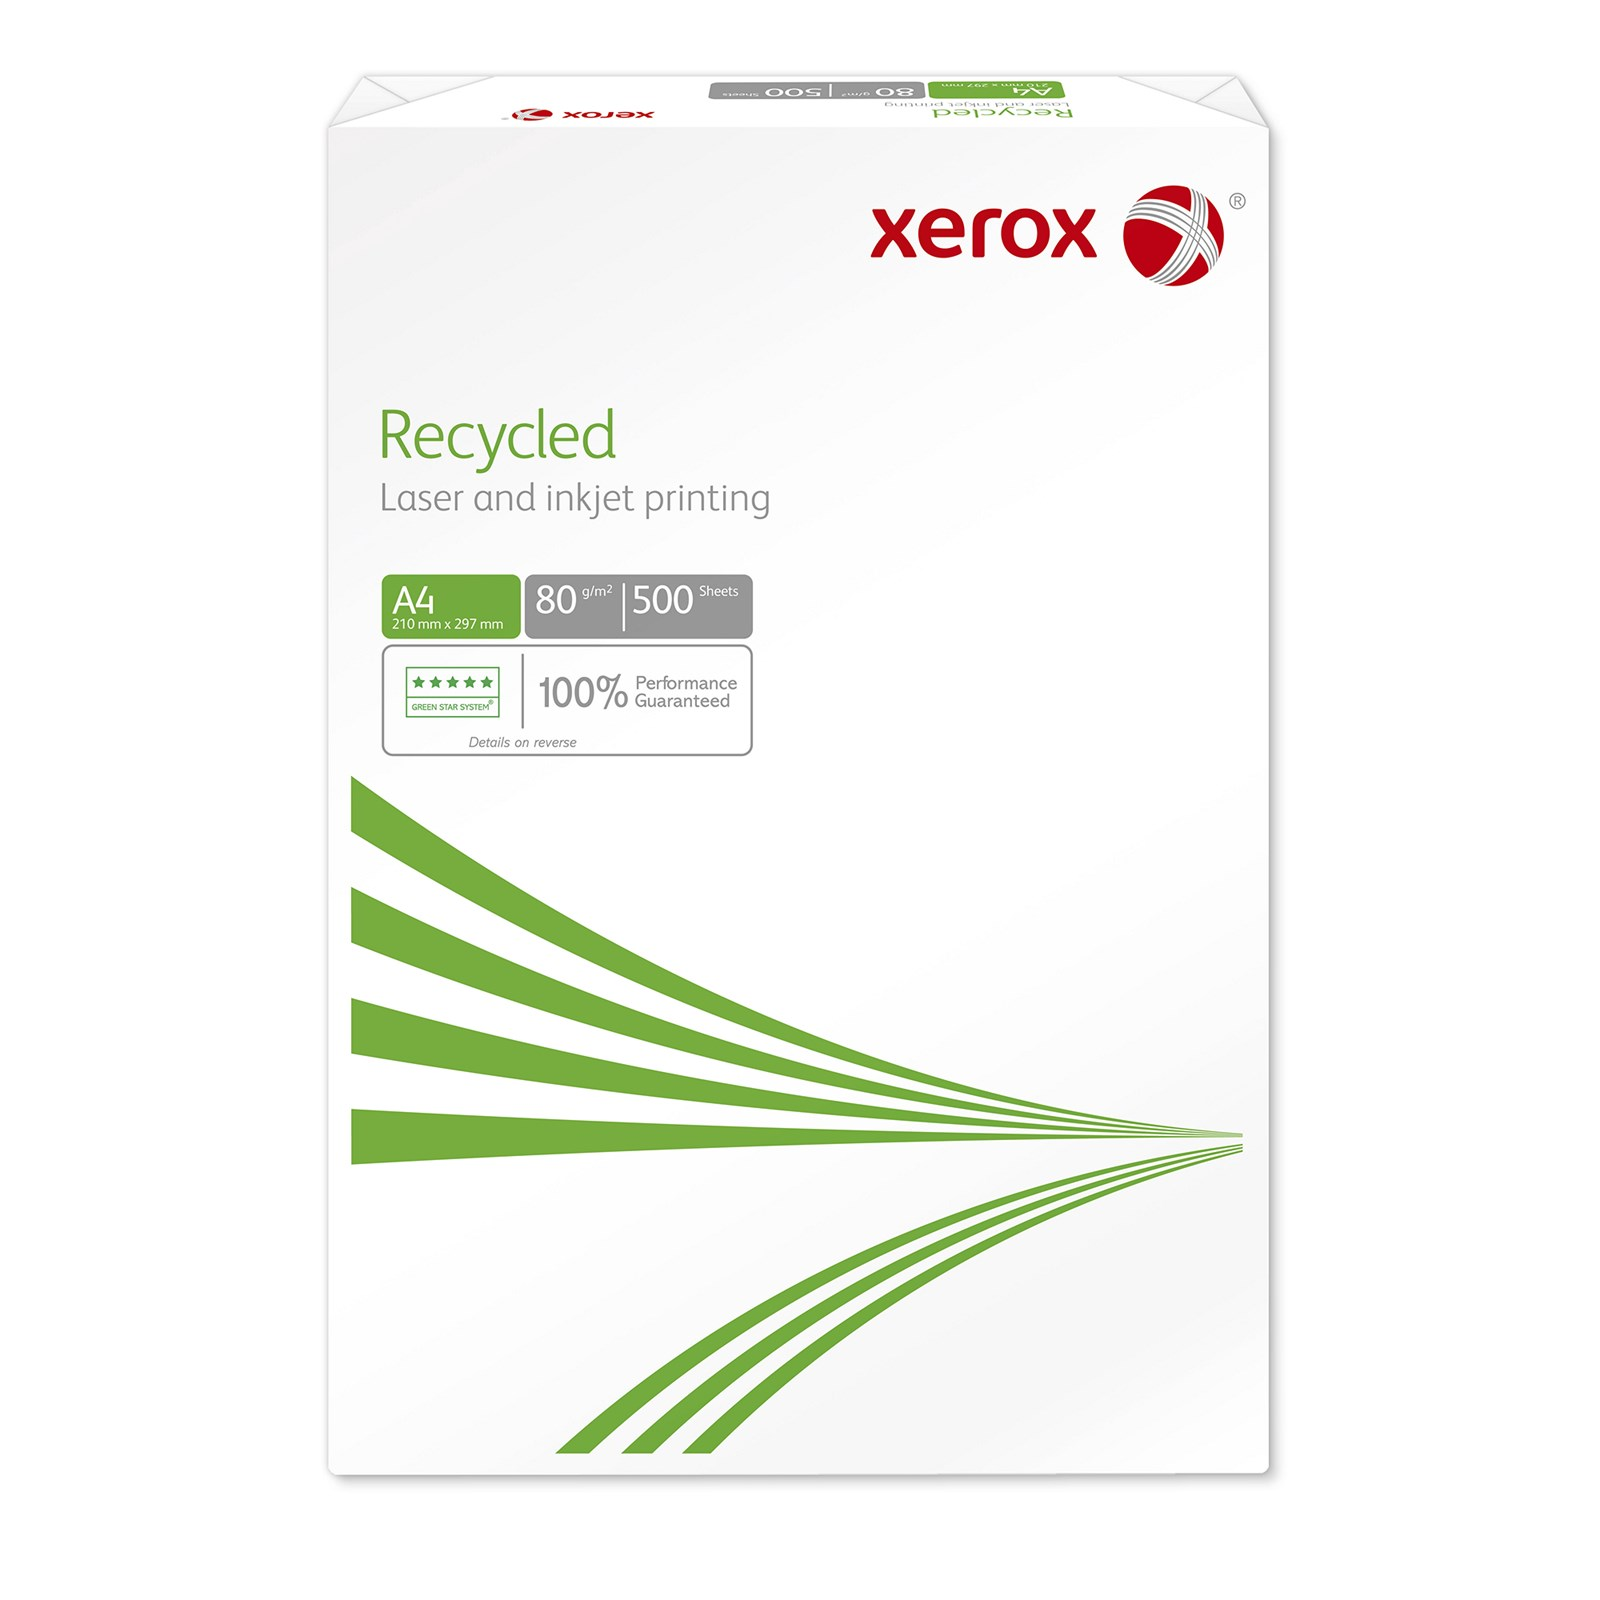 Xerox A4 Recycled Copier Paper - 10 Reams